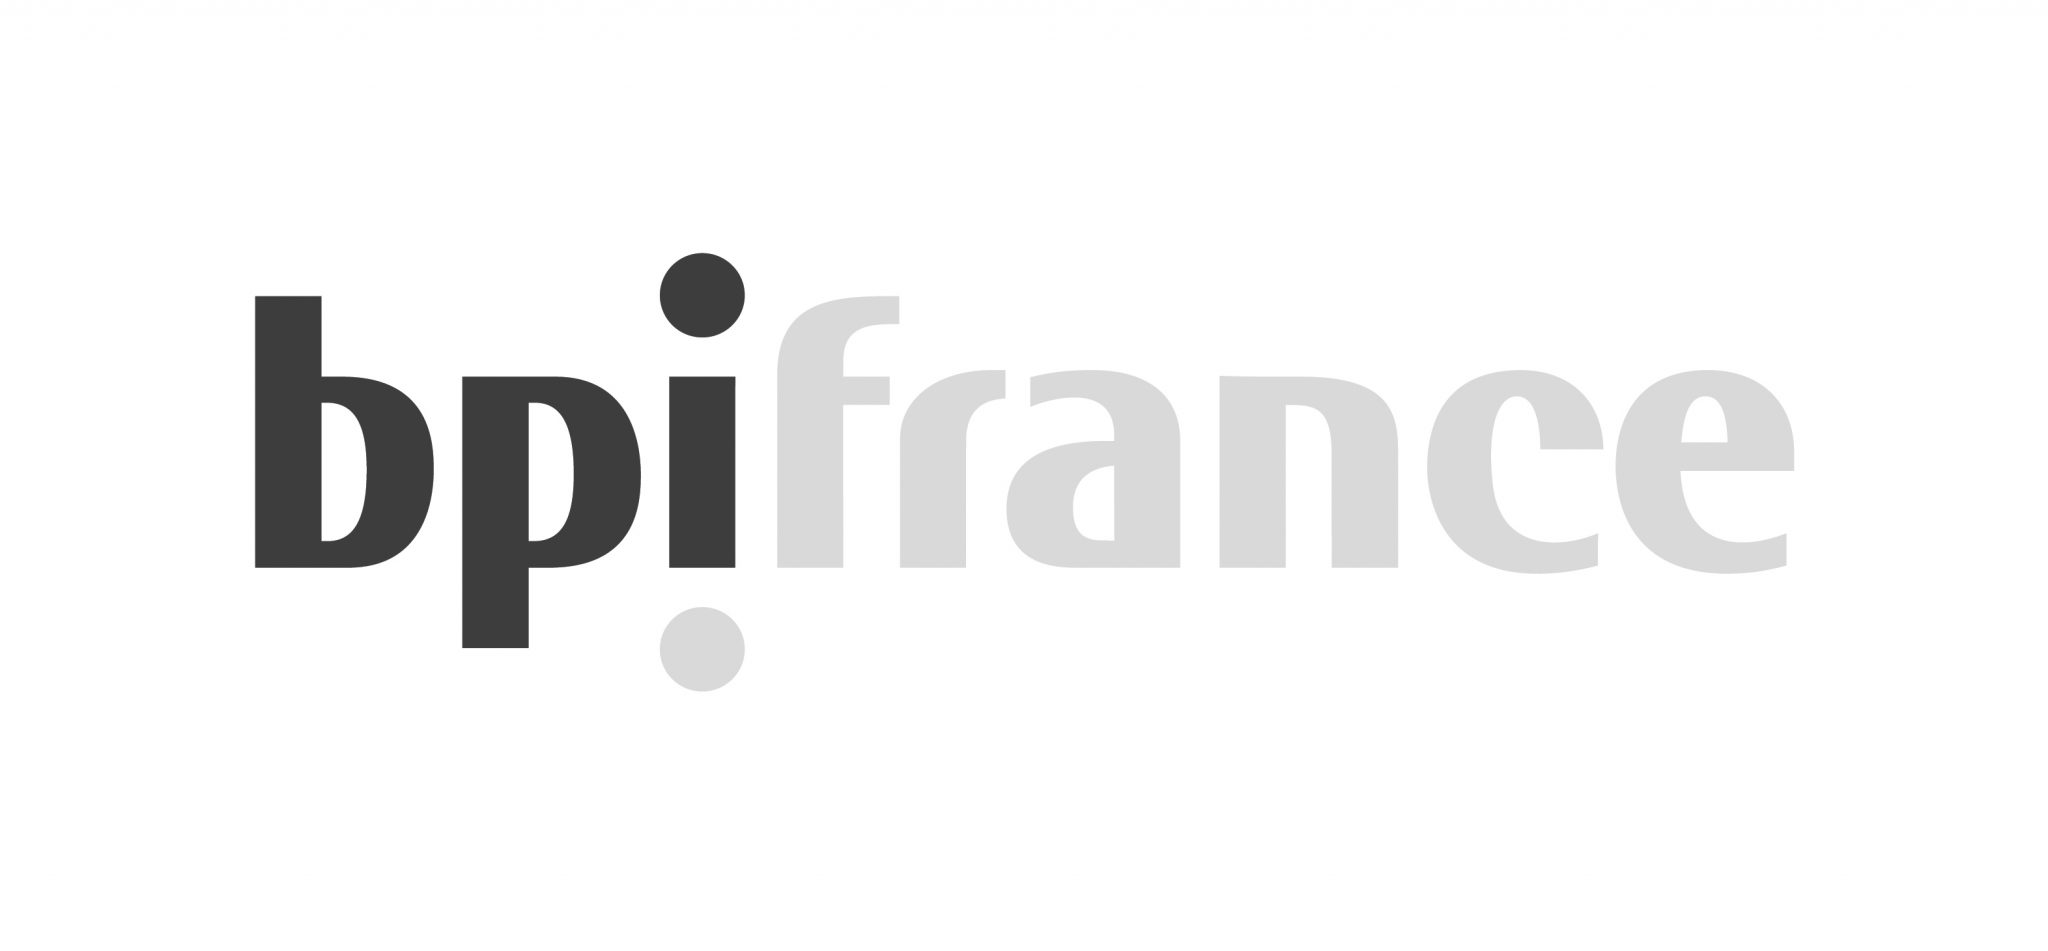 BPI France_logo black and white